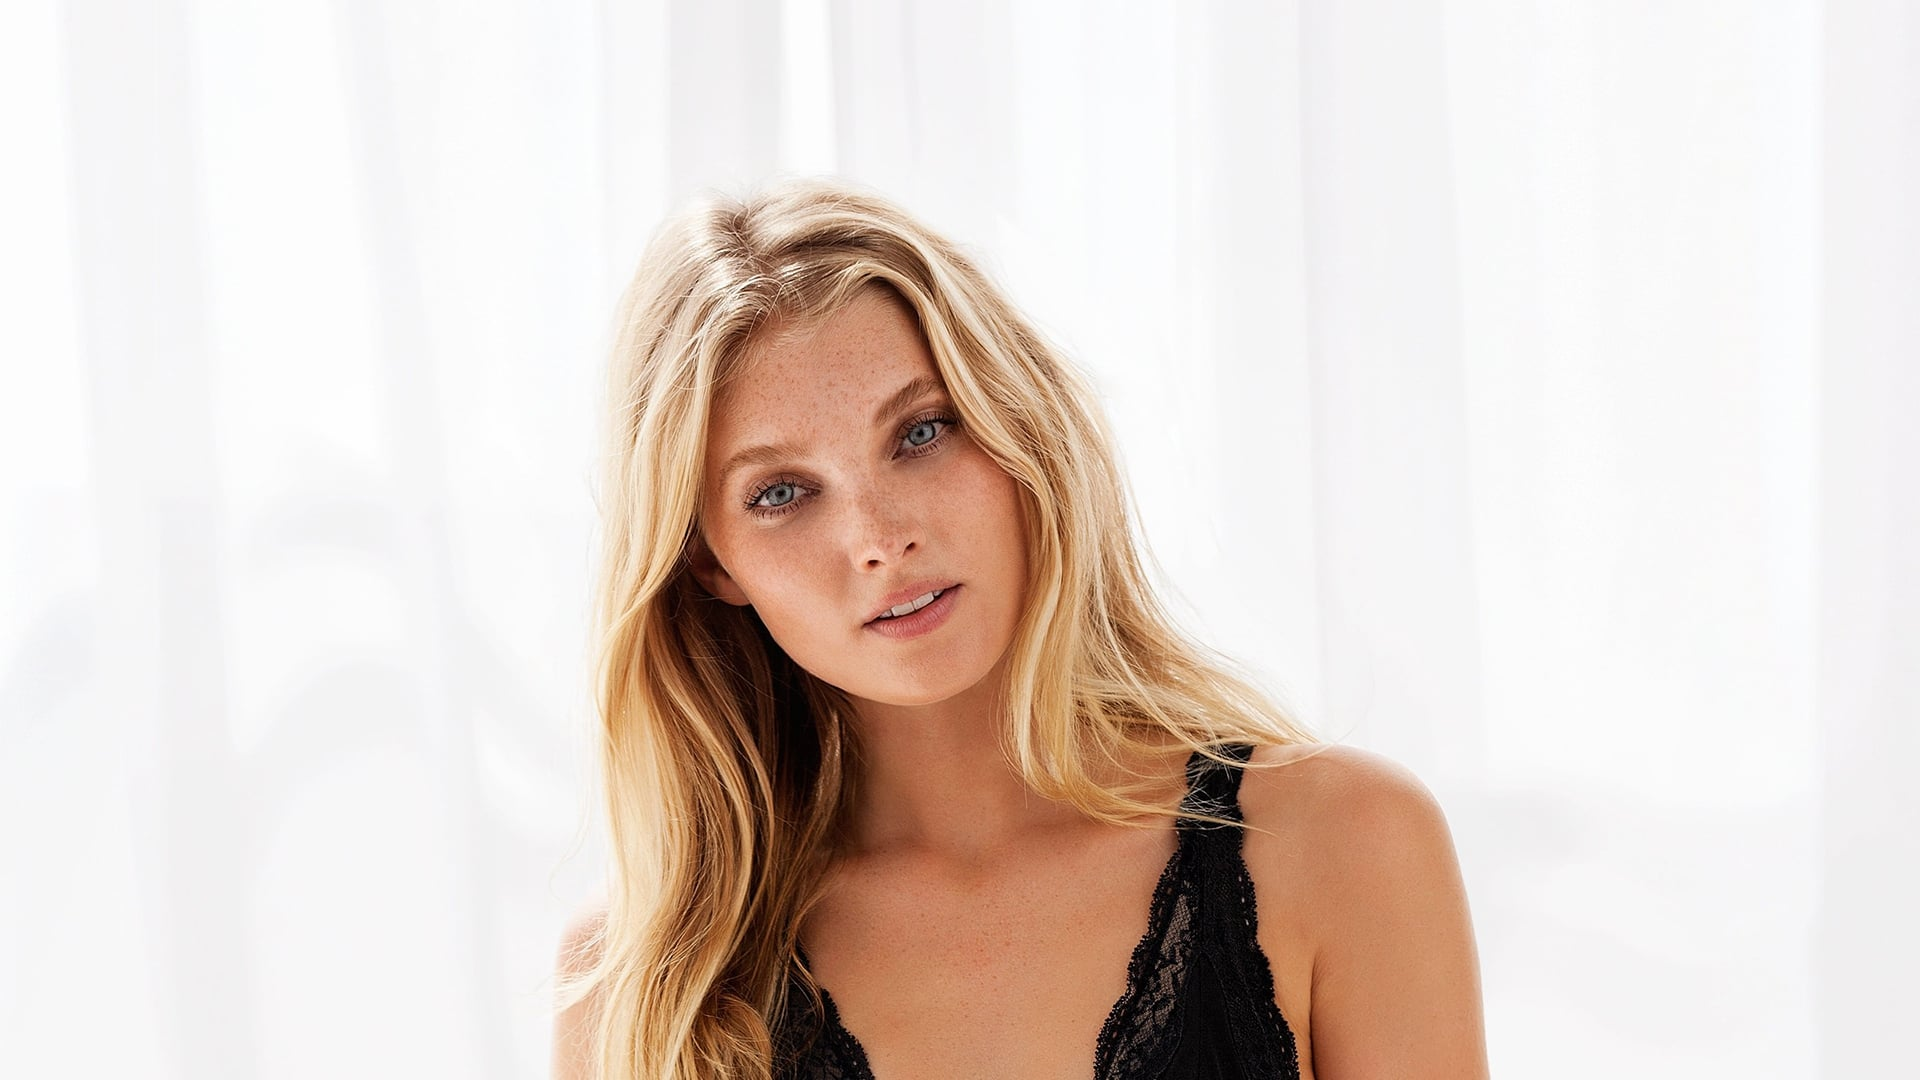 Elsa Hosk 4k wallpaper download